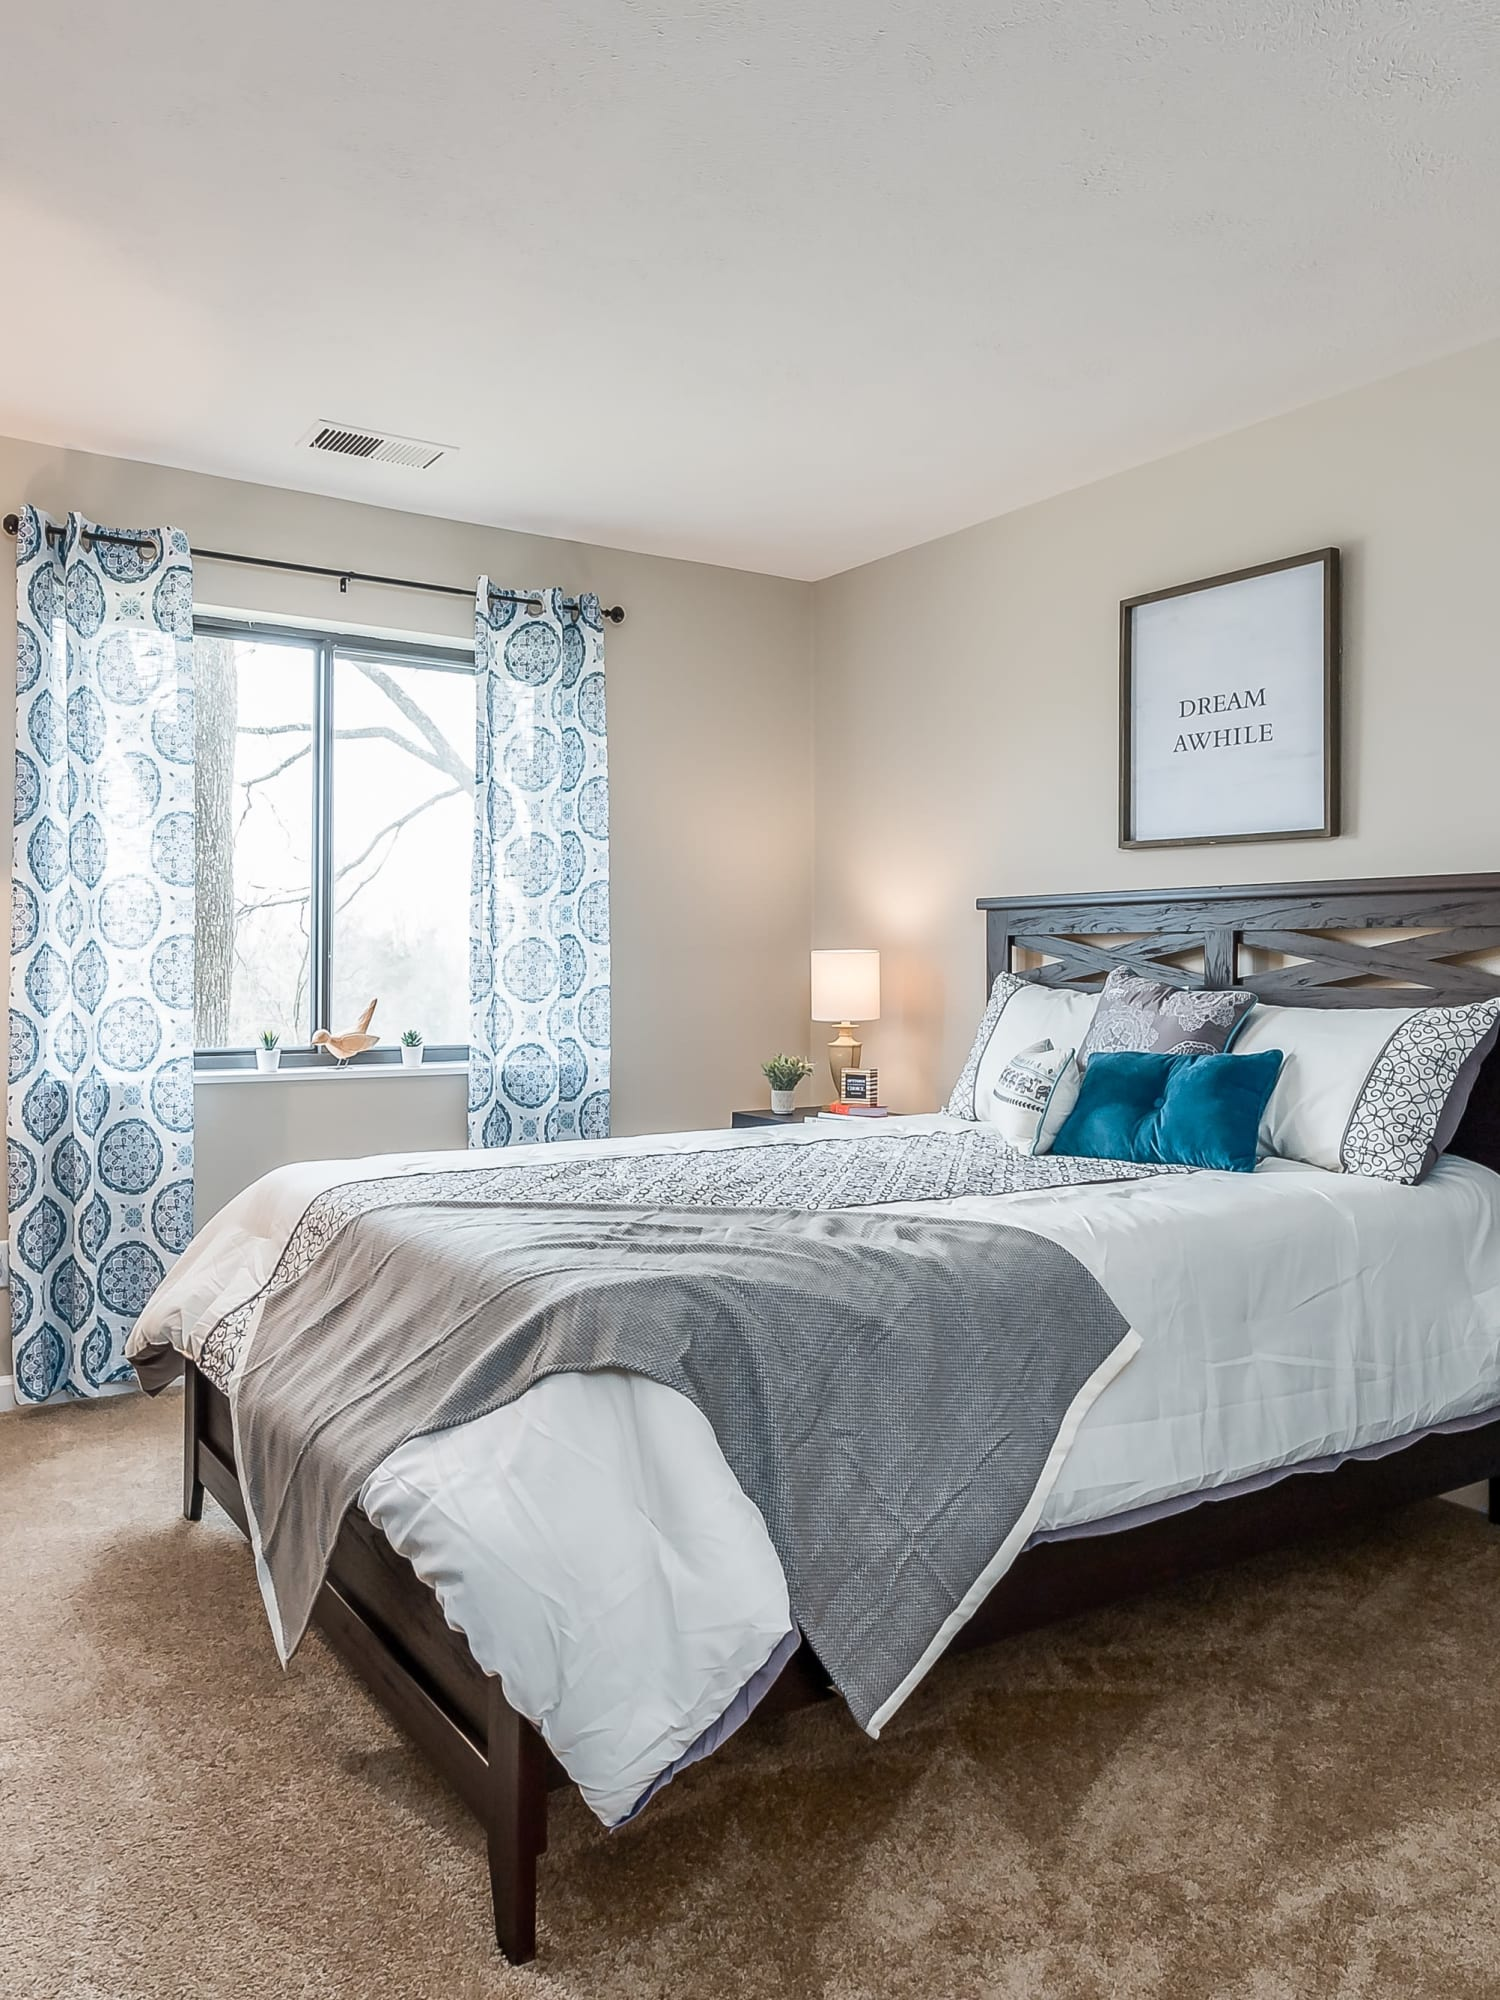 Model bedroom at Miamiview Apartments in Cleves, Ohio